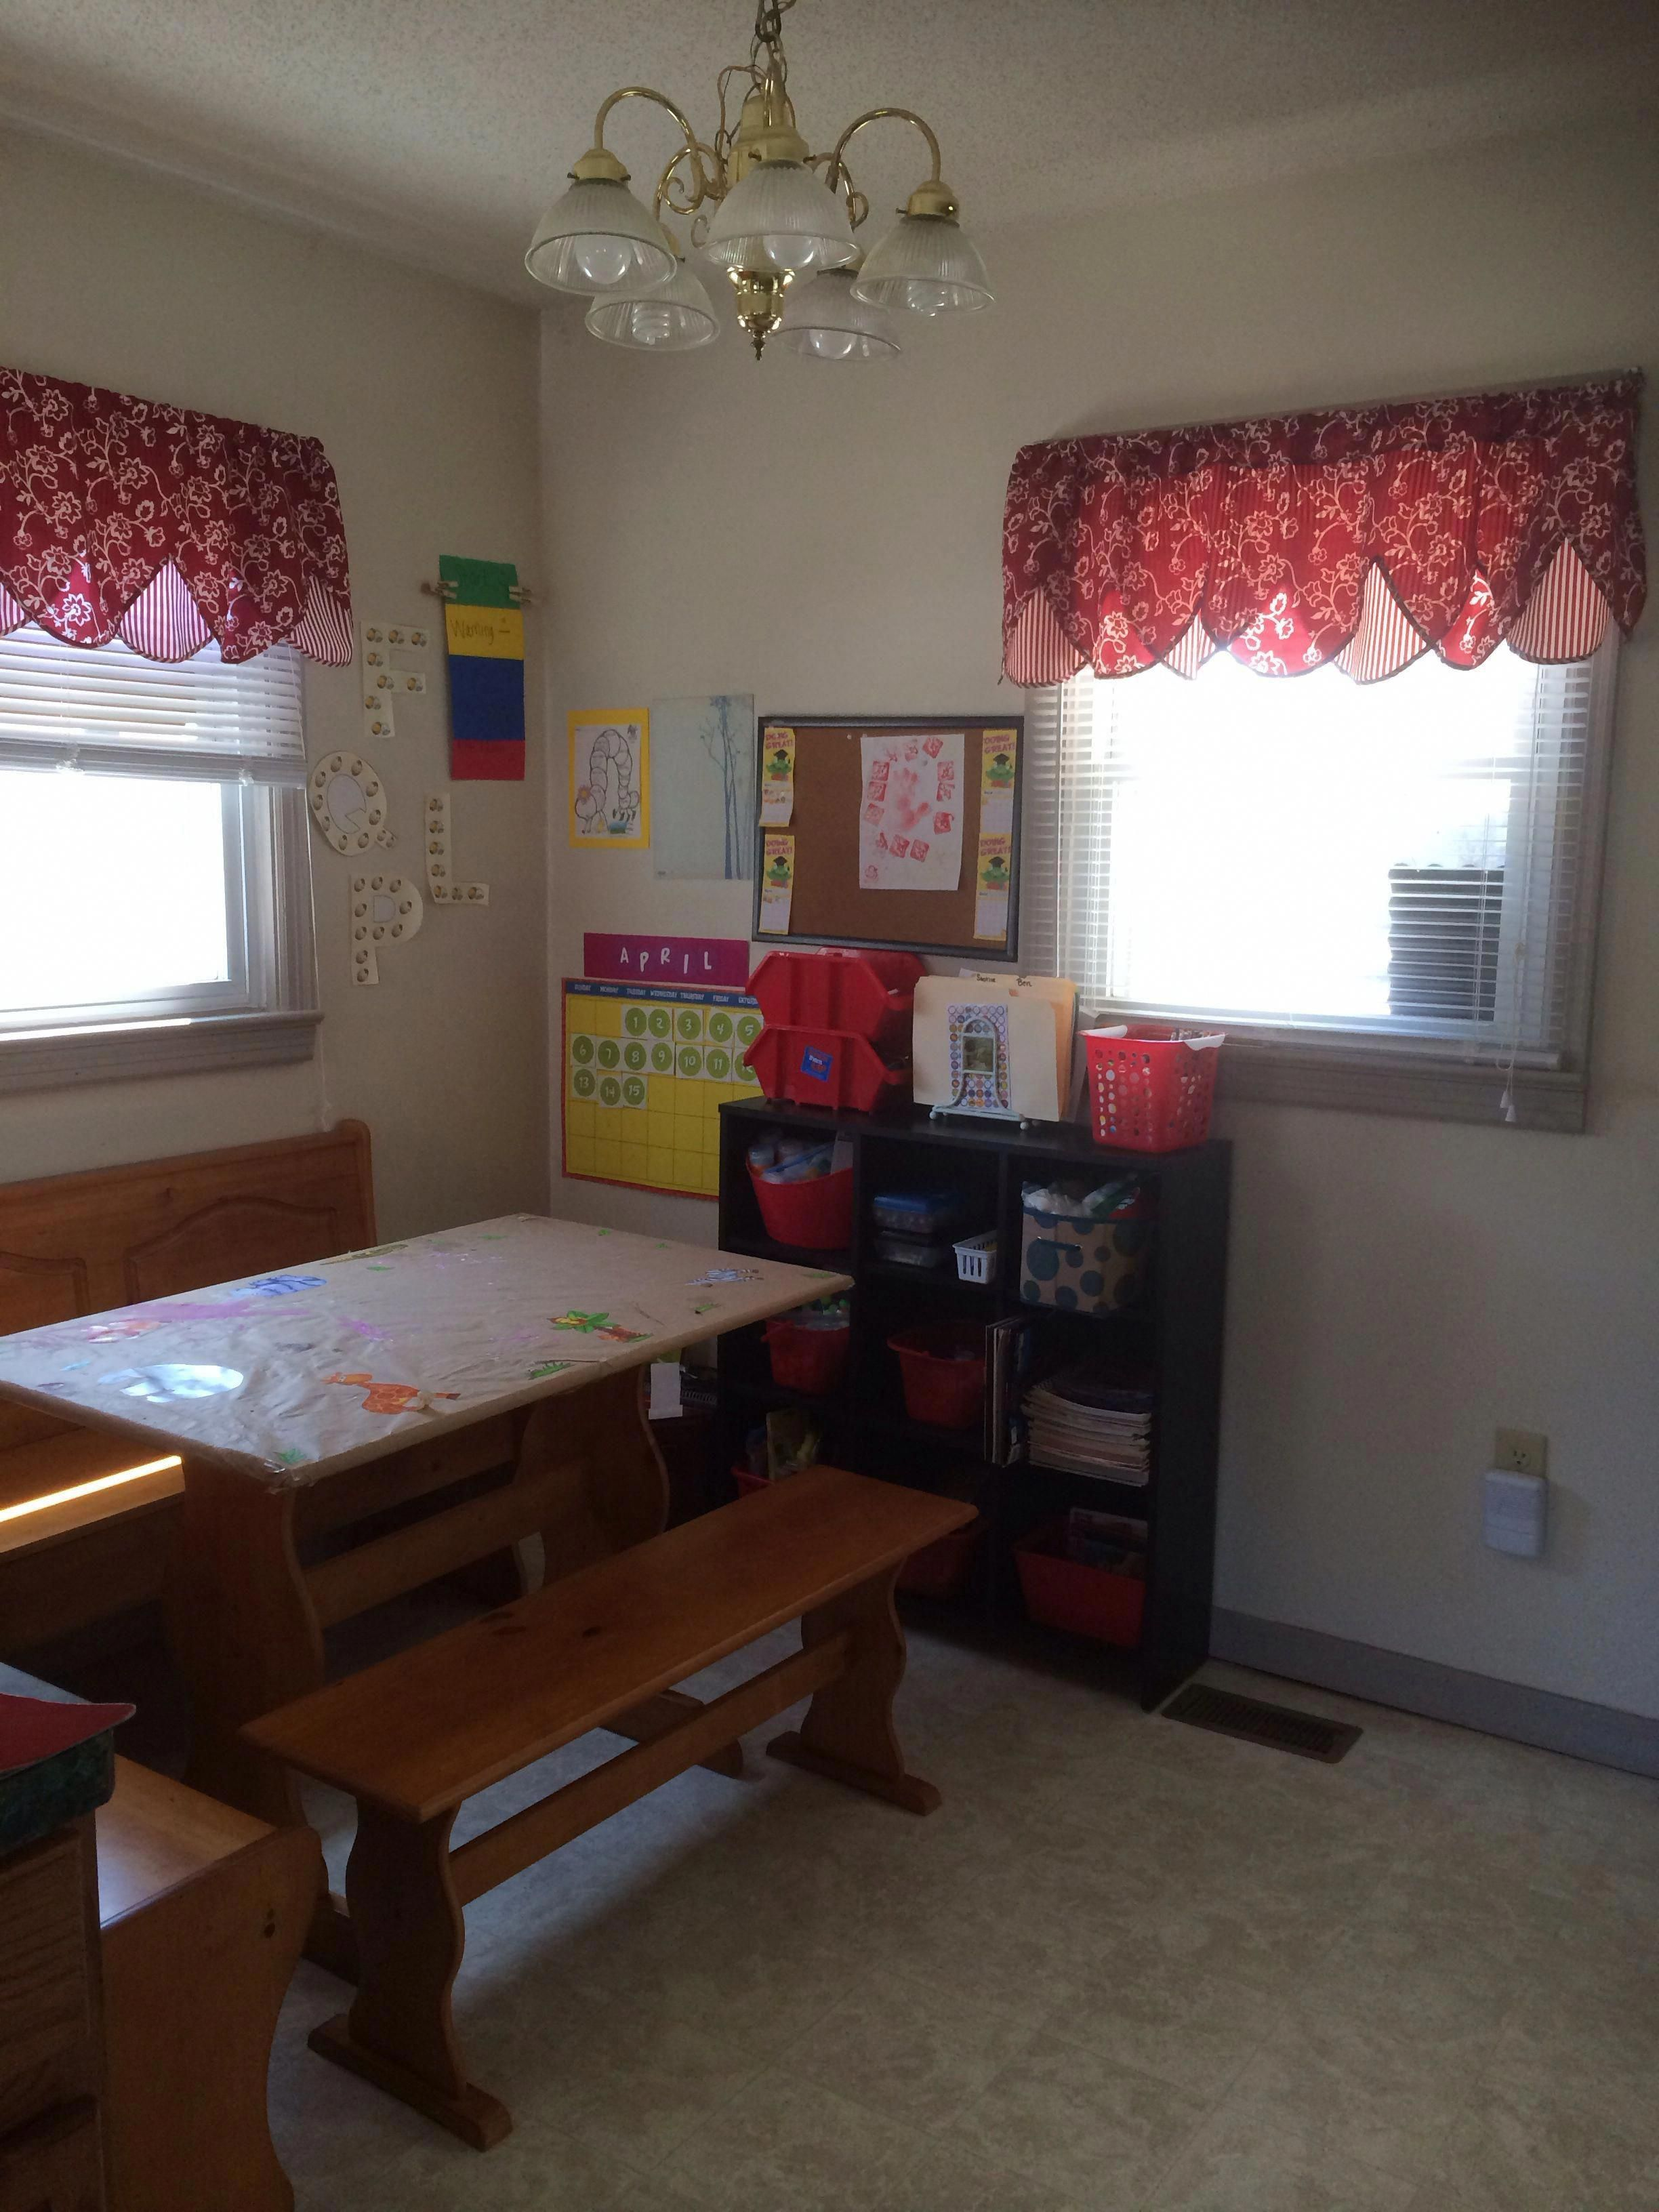 Home Daycare Command Center Bookshelf And Dollar Store Bins For